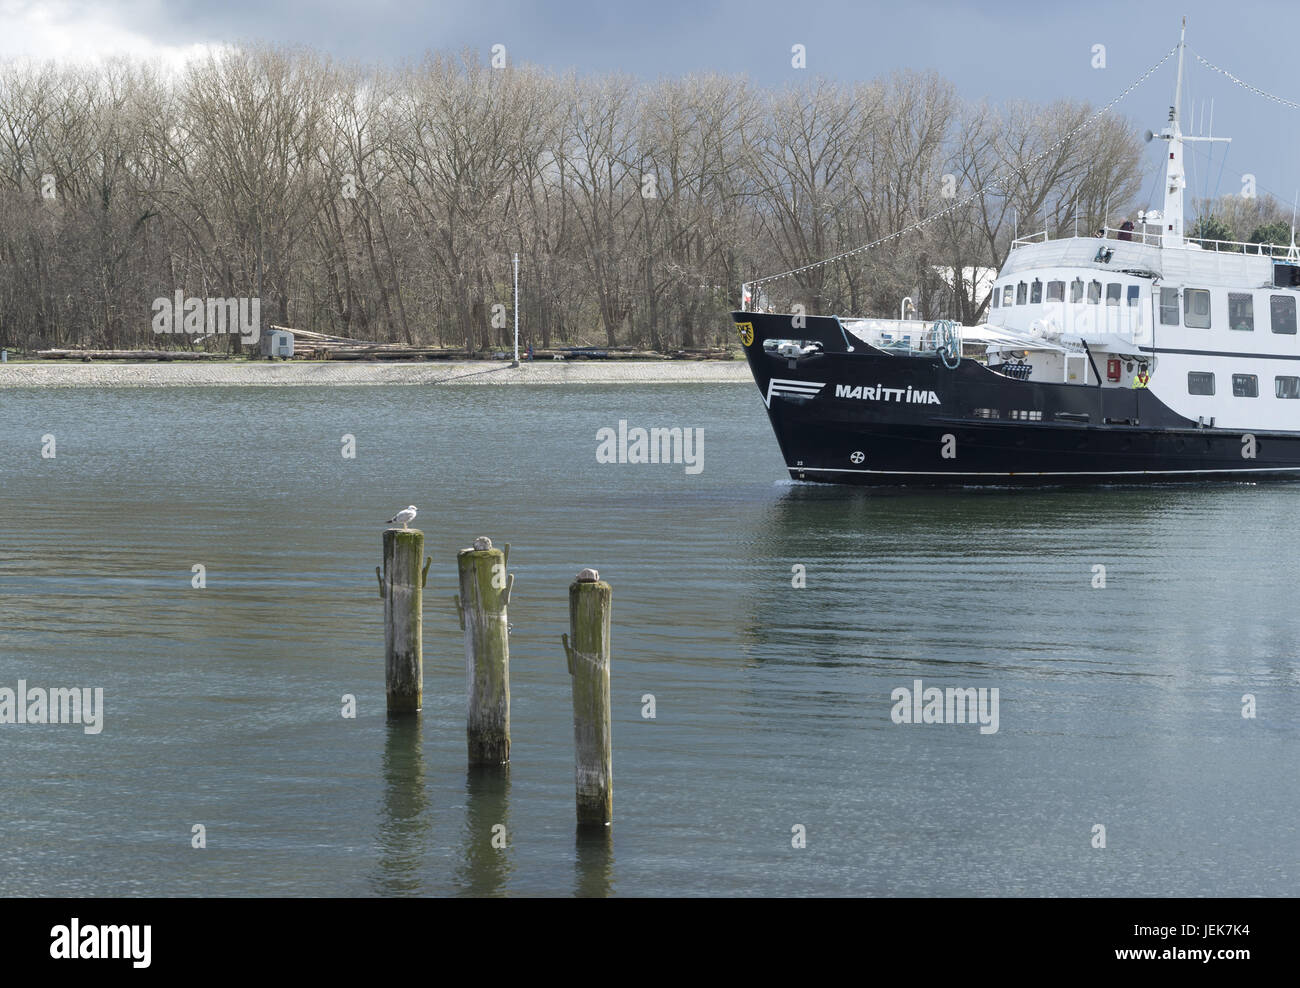 Trave in Travemuende - Stock Image